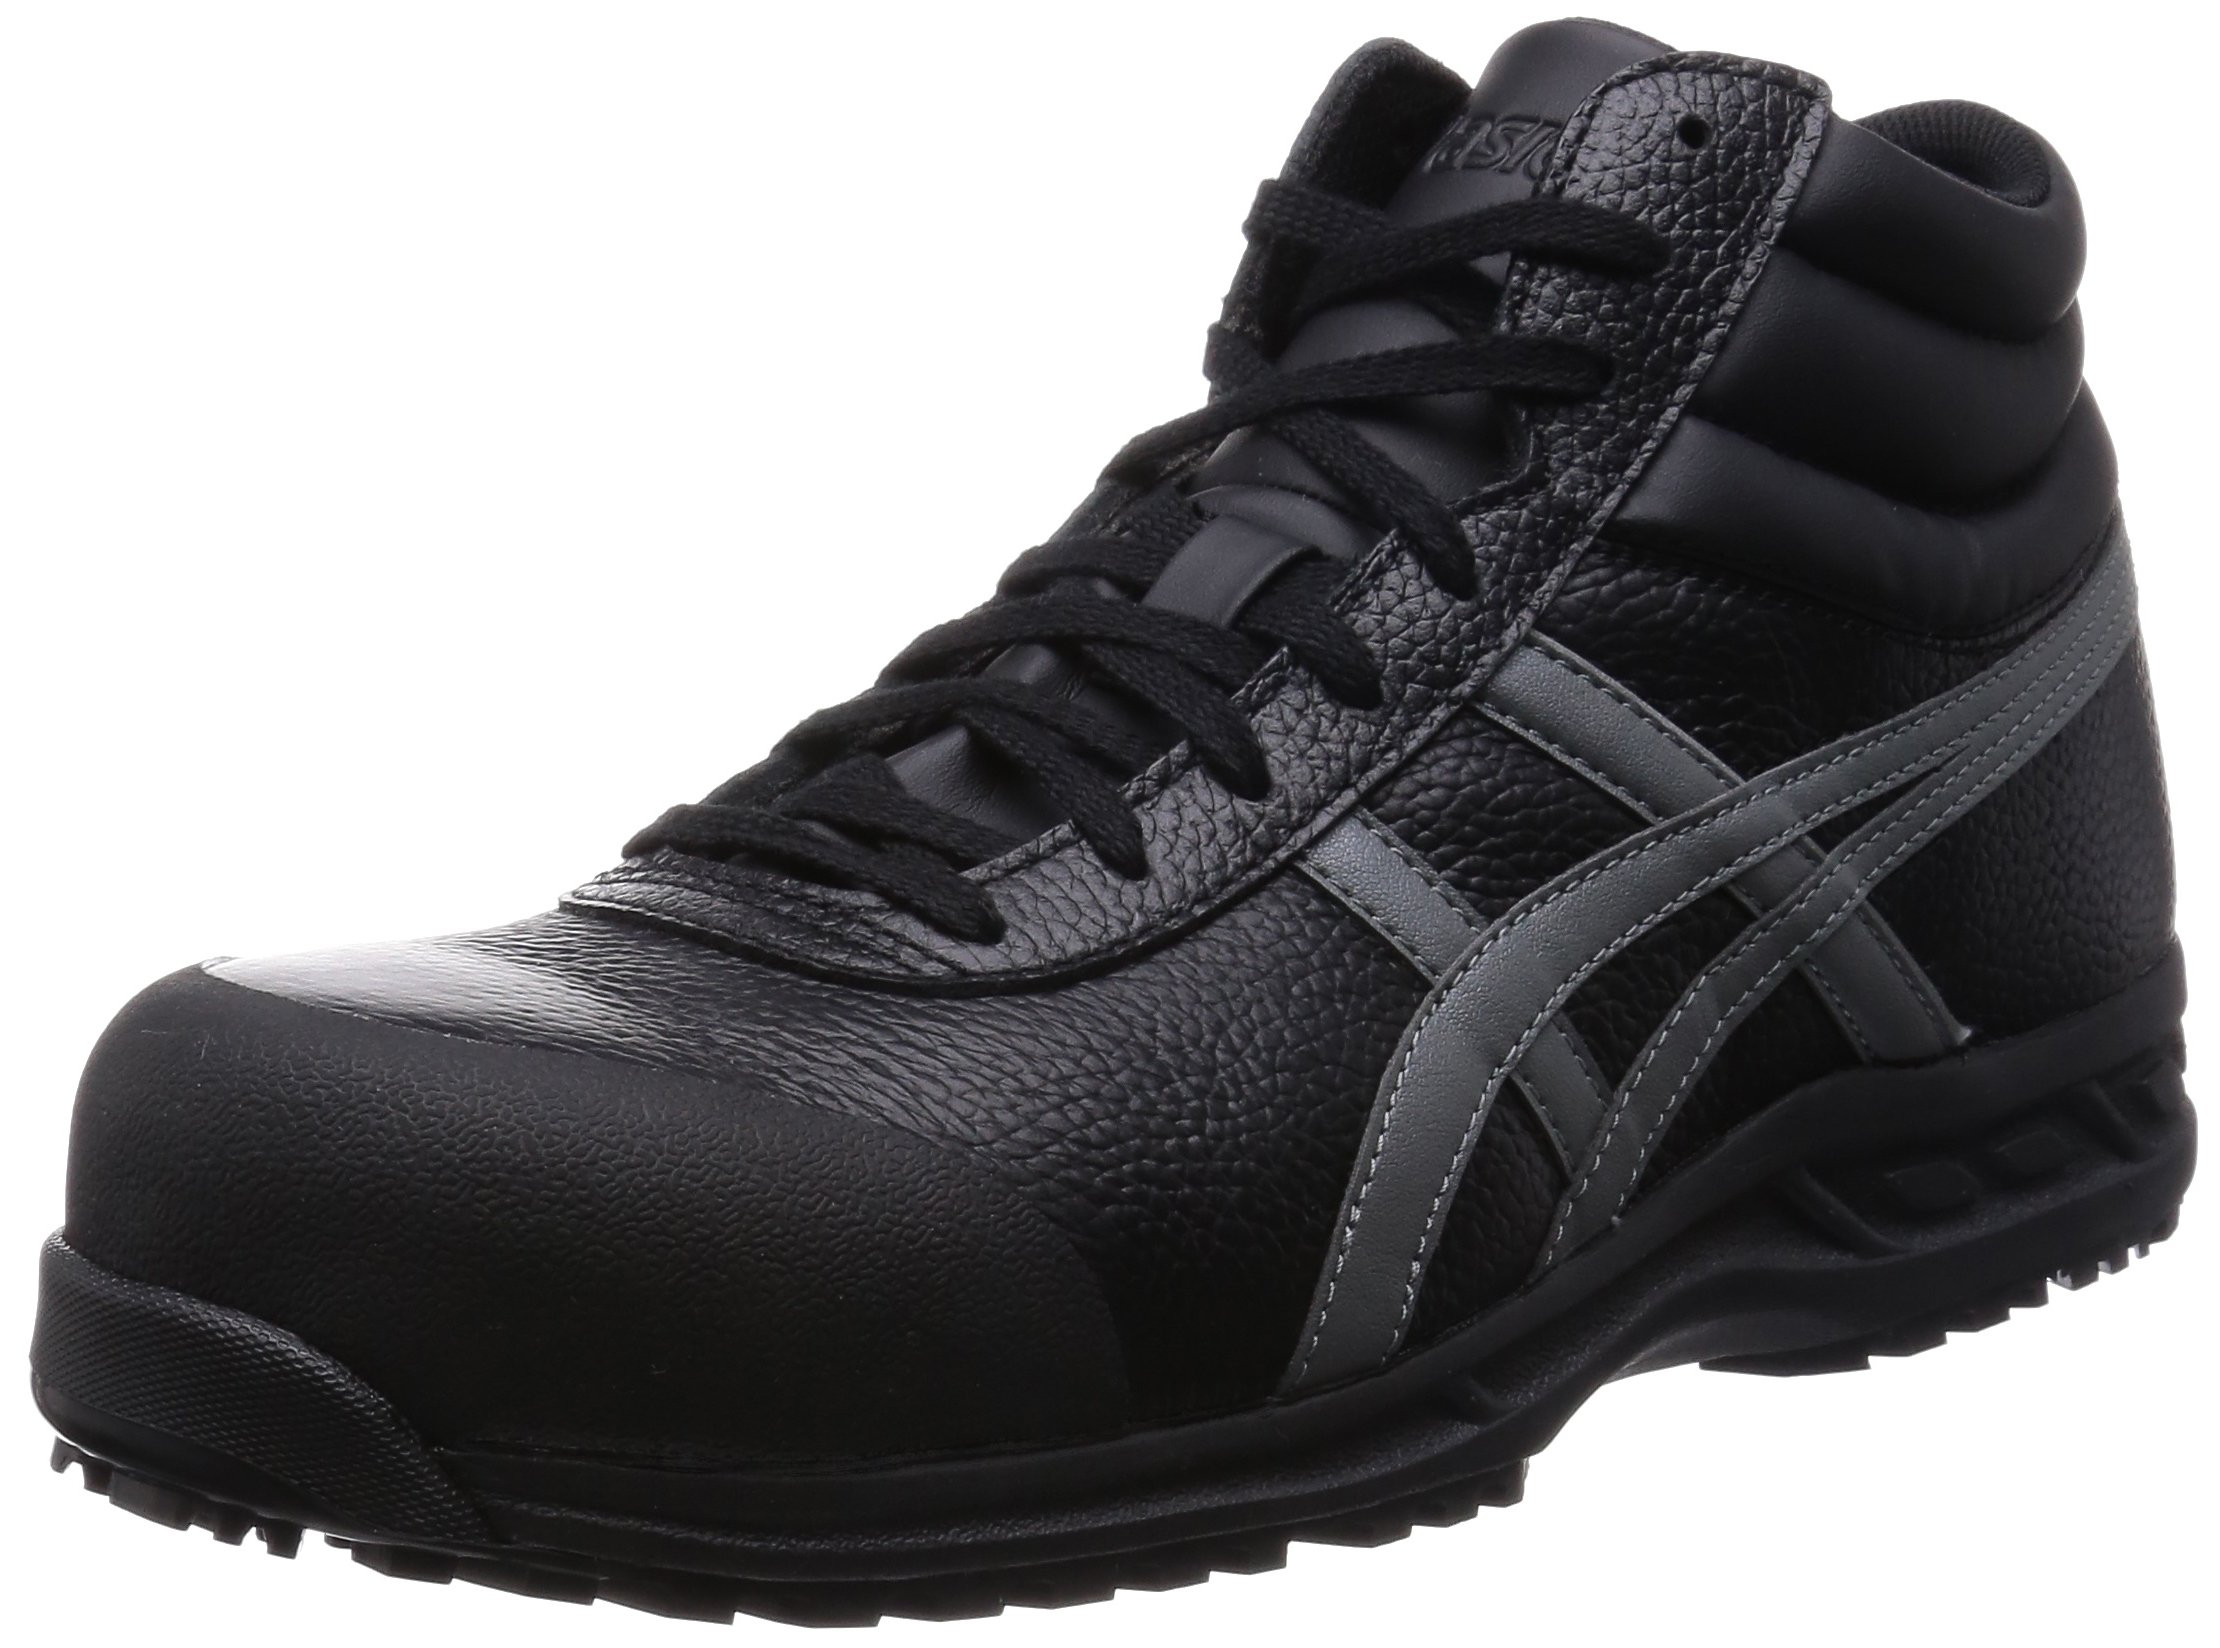 Asics] Working Safety Shoes / Work